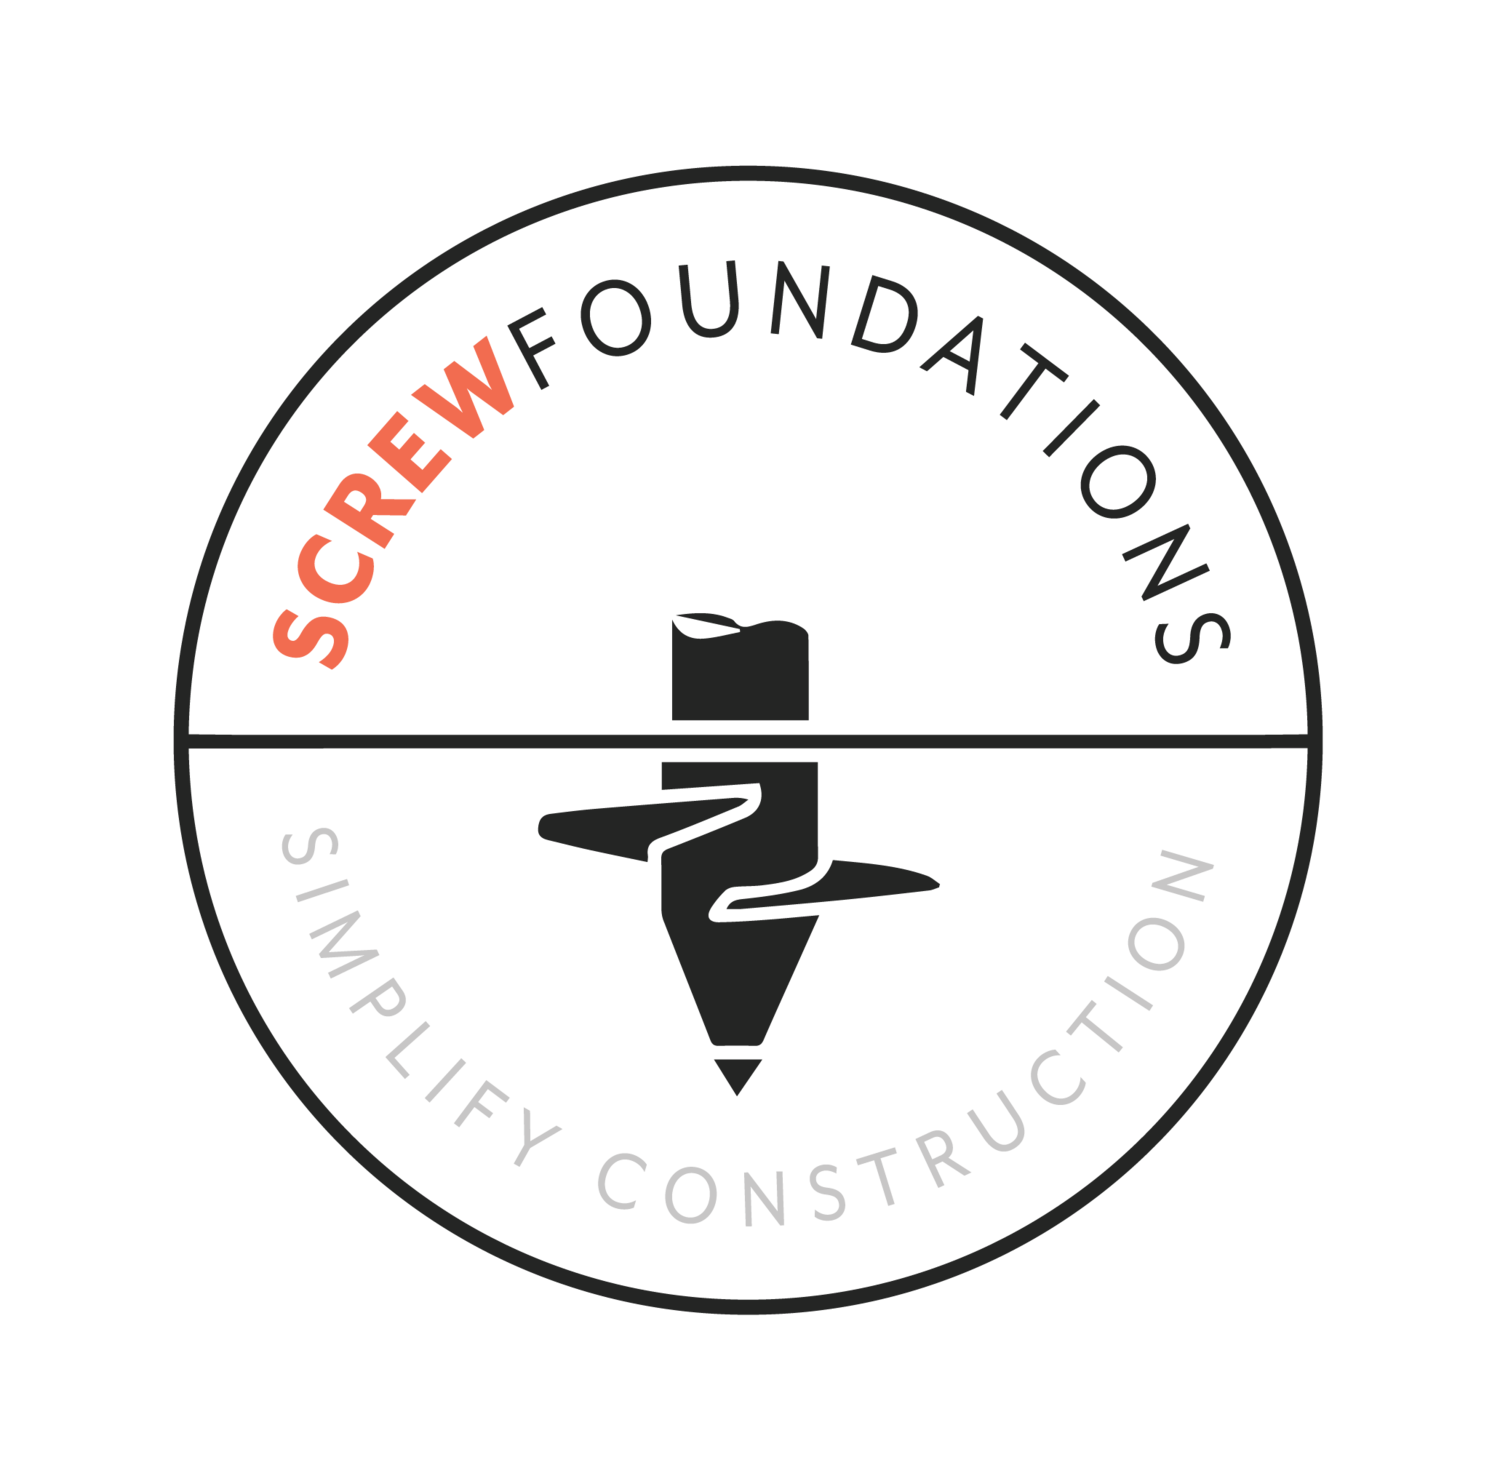 SIMPLIFY CONSTRUCTION WITH SCREW FOUNDATIONS